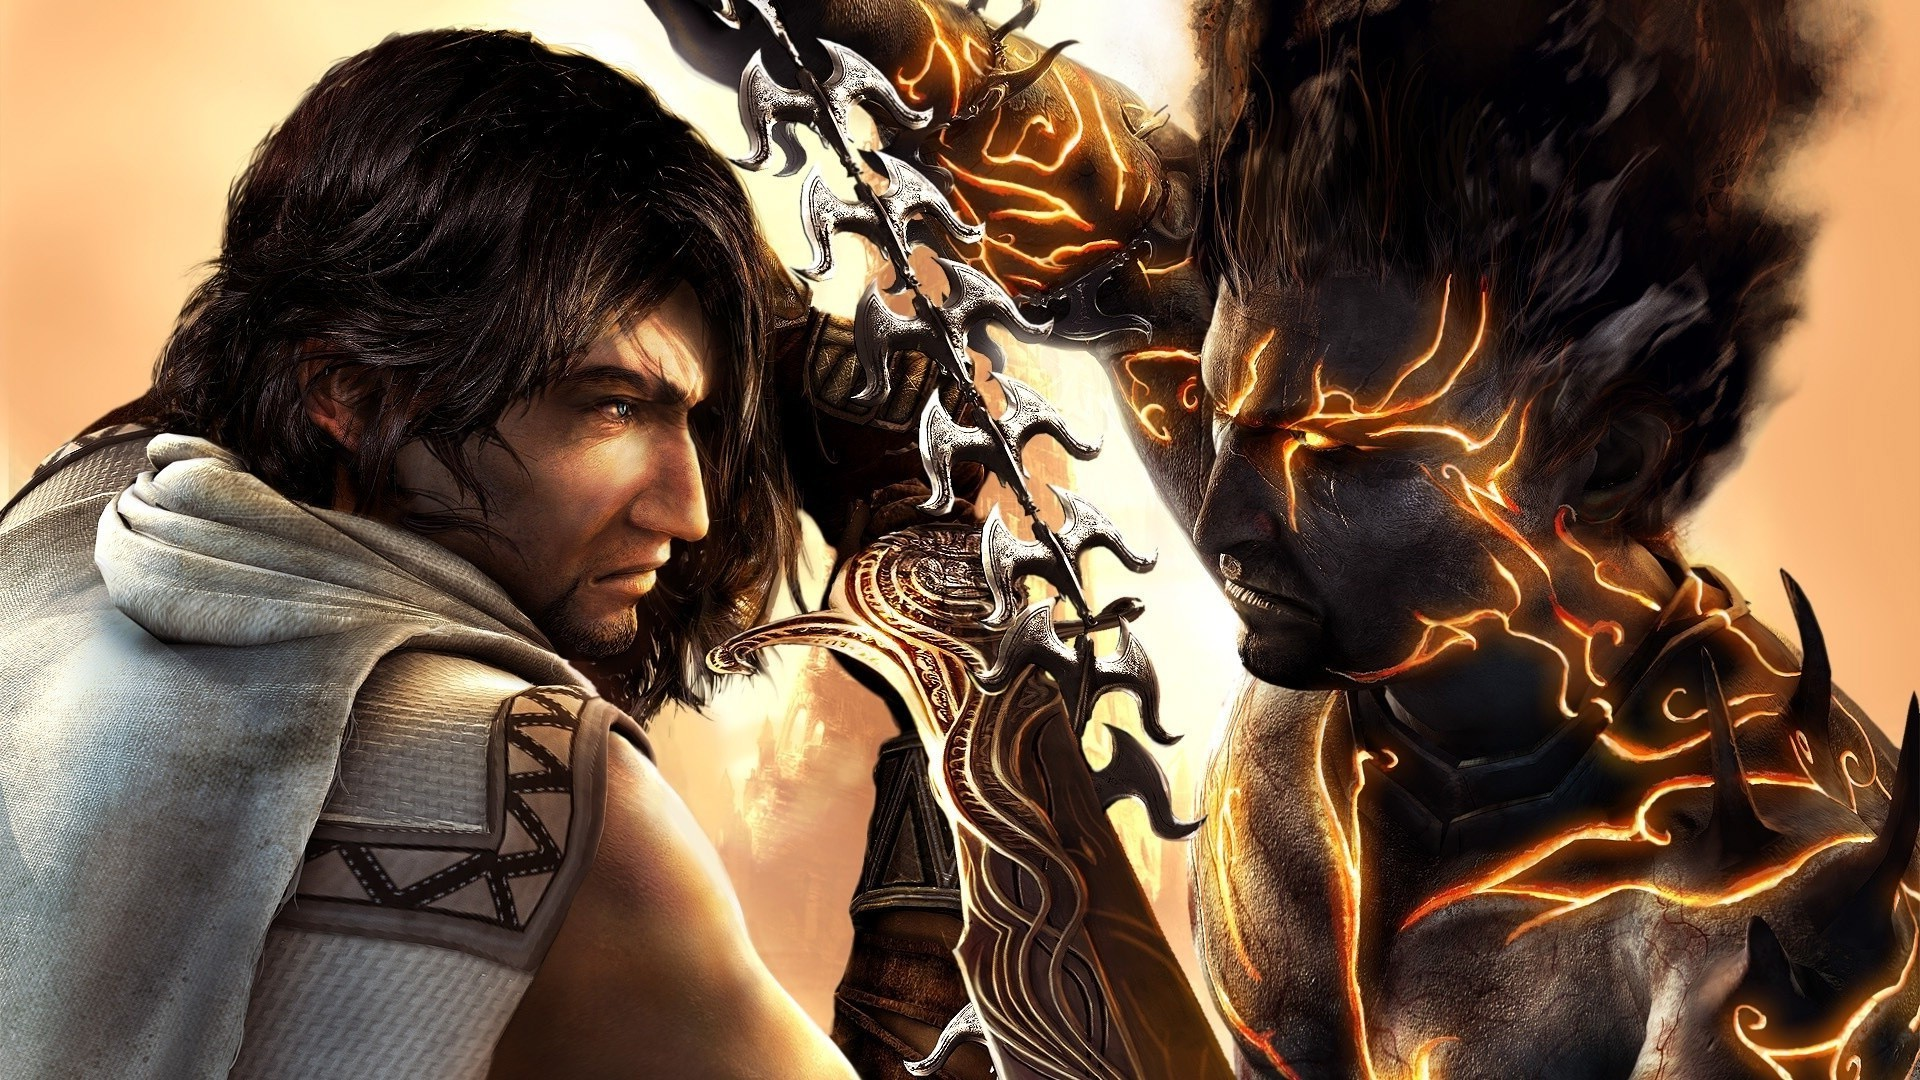 1920x1080 Prince Of Persia Mobile Hd Wallpaper Backgrounds Full Pics Games The Two  Thrones